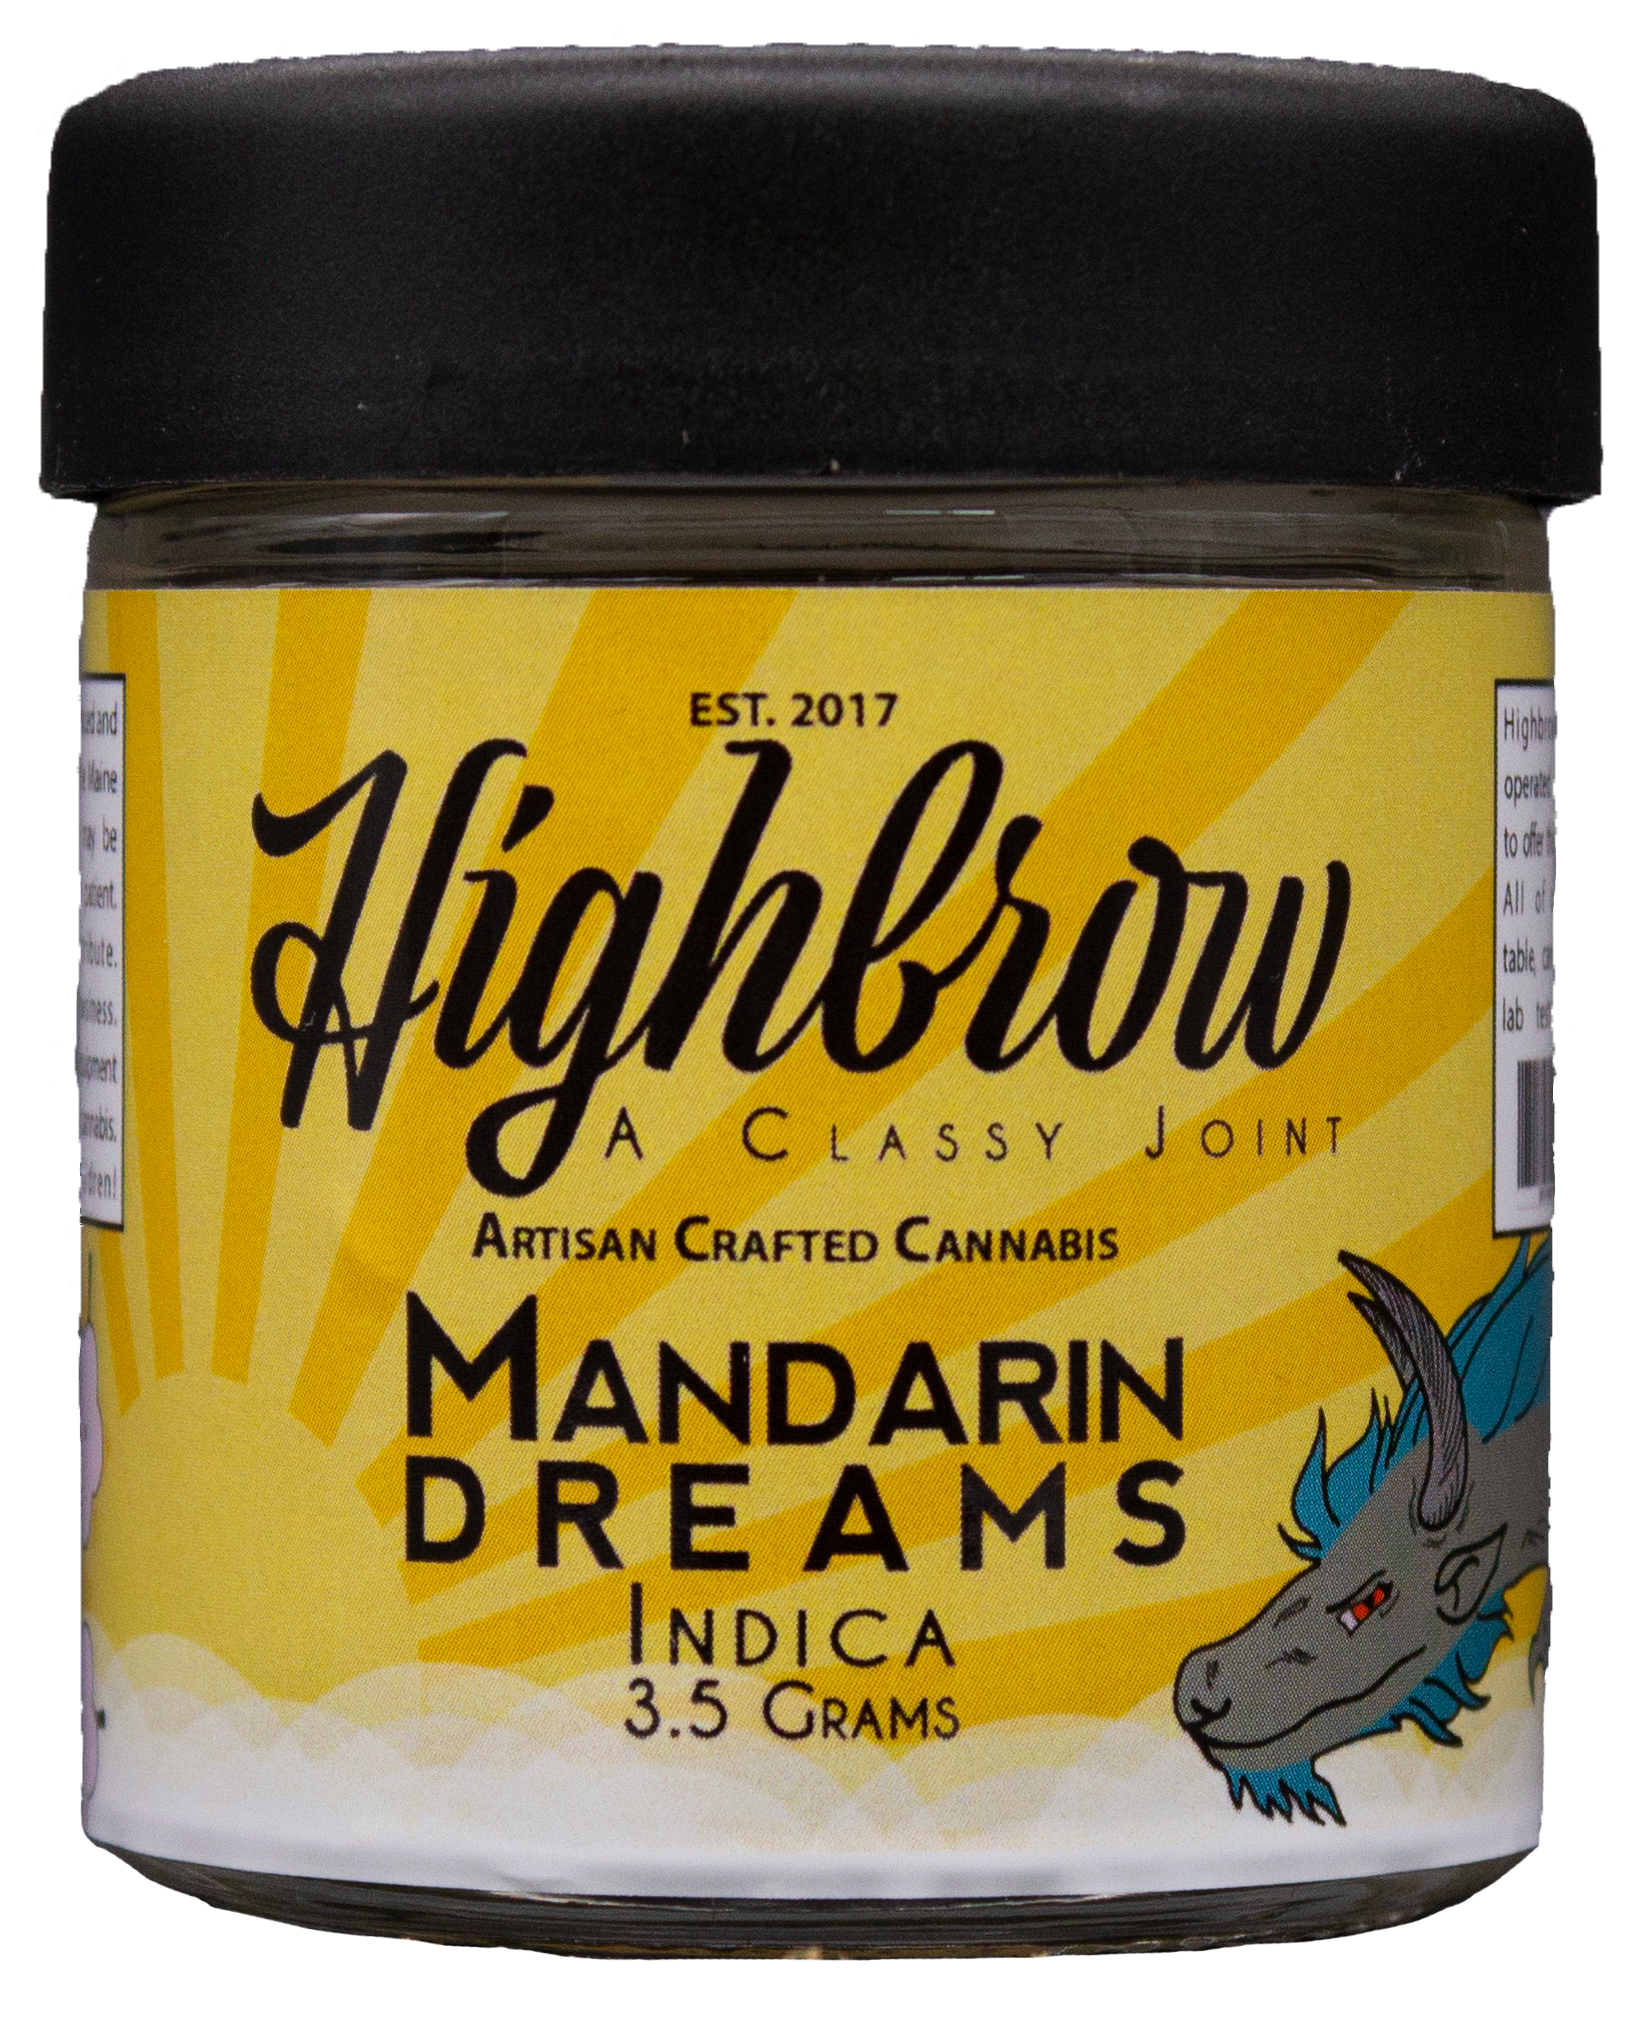 Mandarin Dreams - An indica for your daydreams.